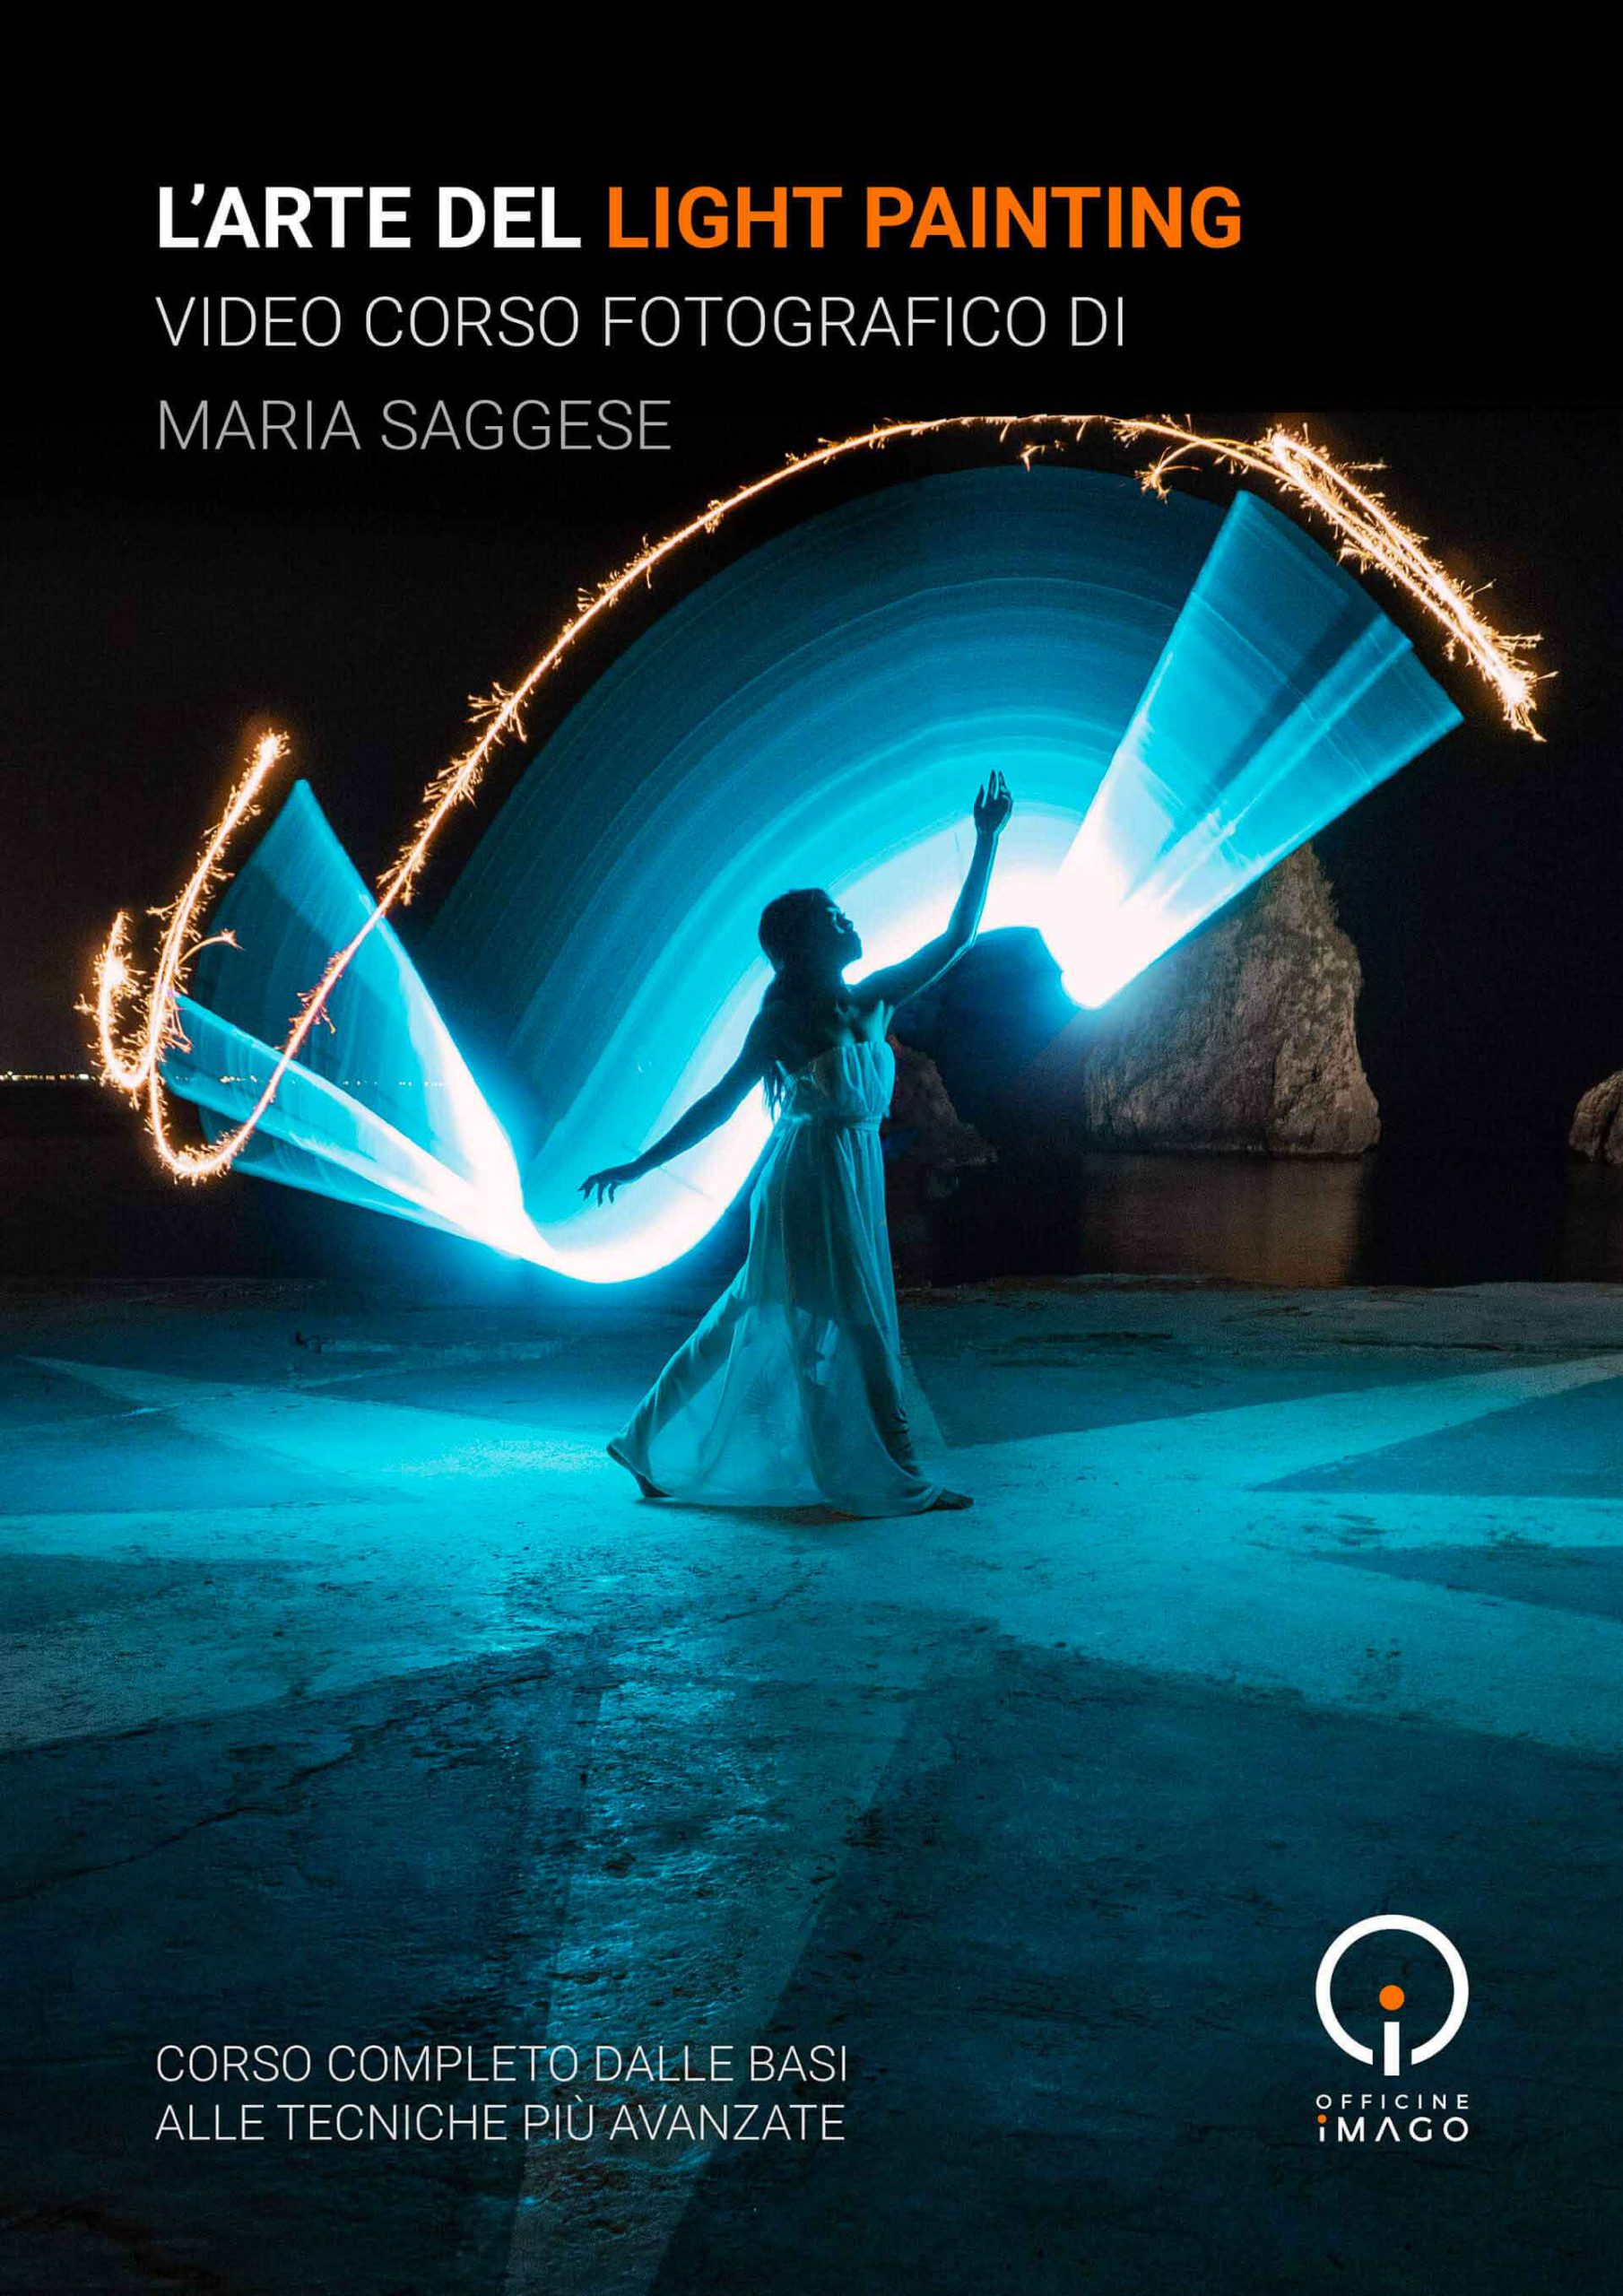 videocorso di light painting